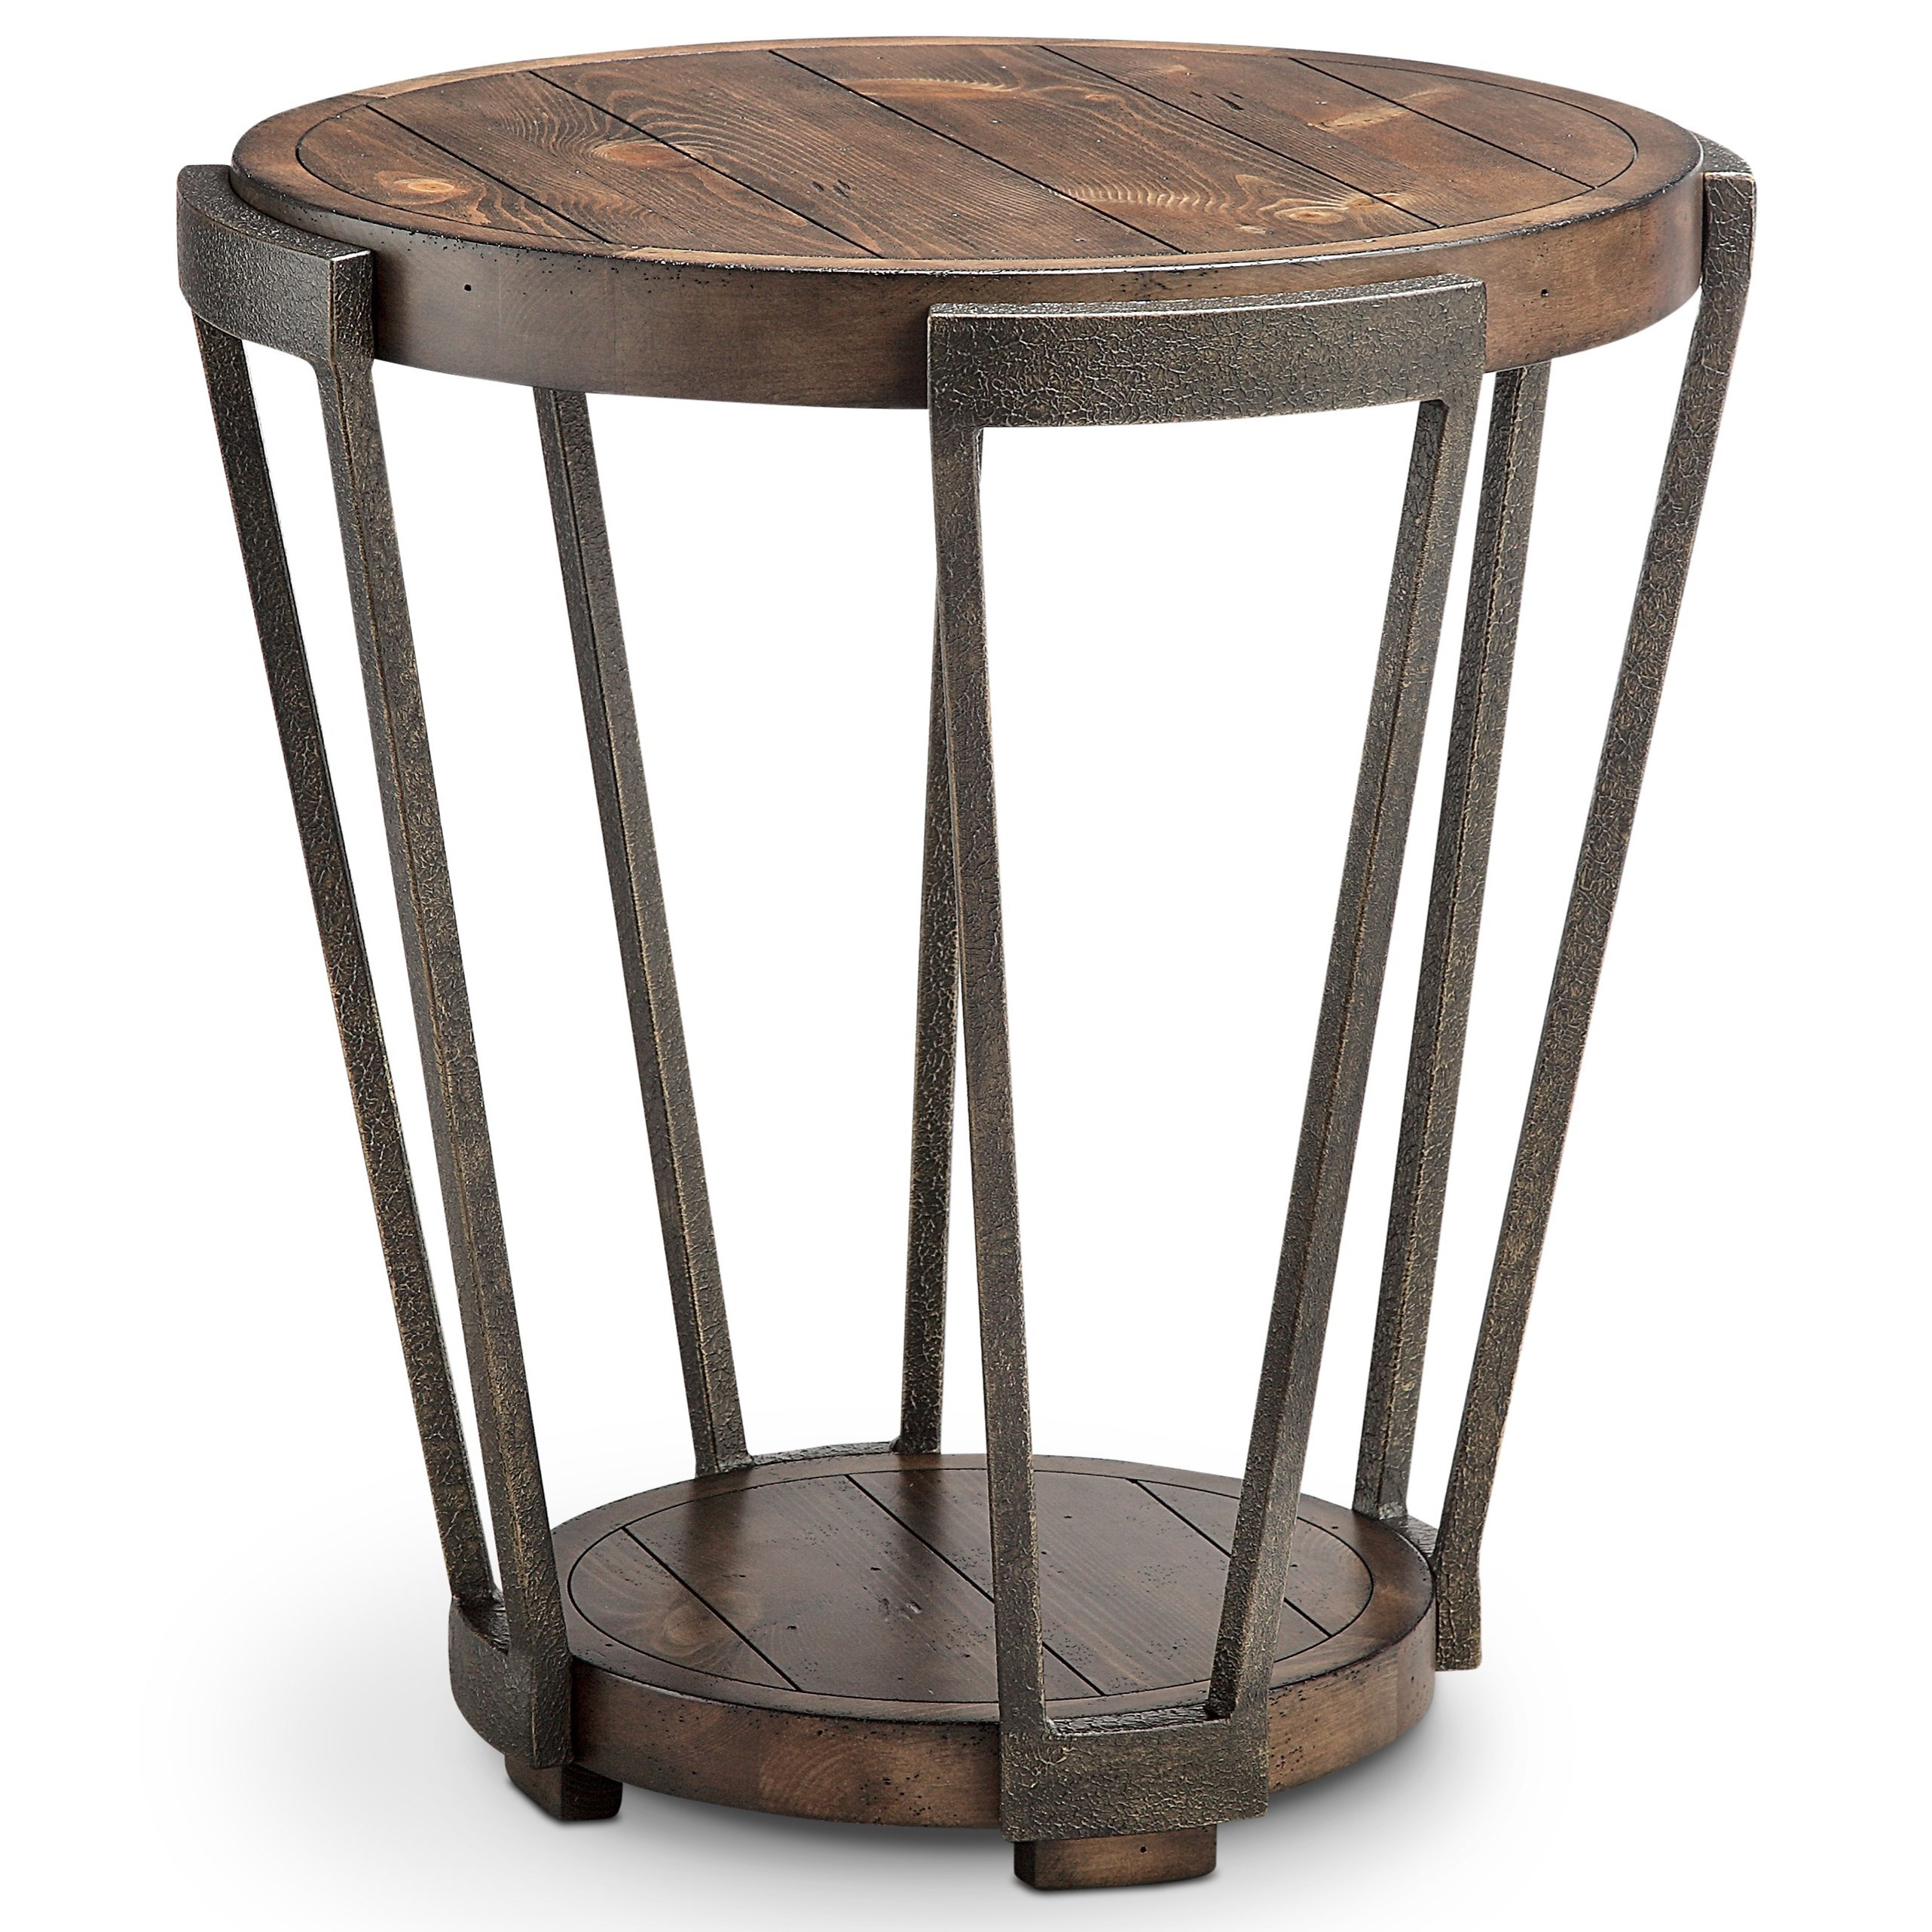 Magnussen Home Yukon Round End Table   Item Number: T4405 05